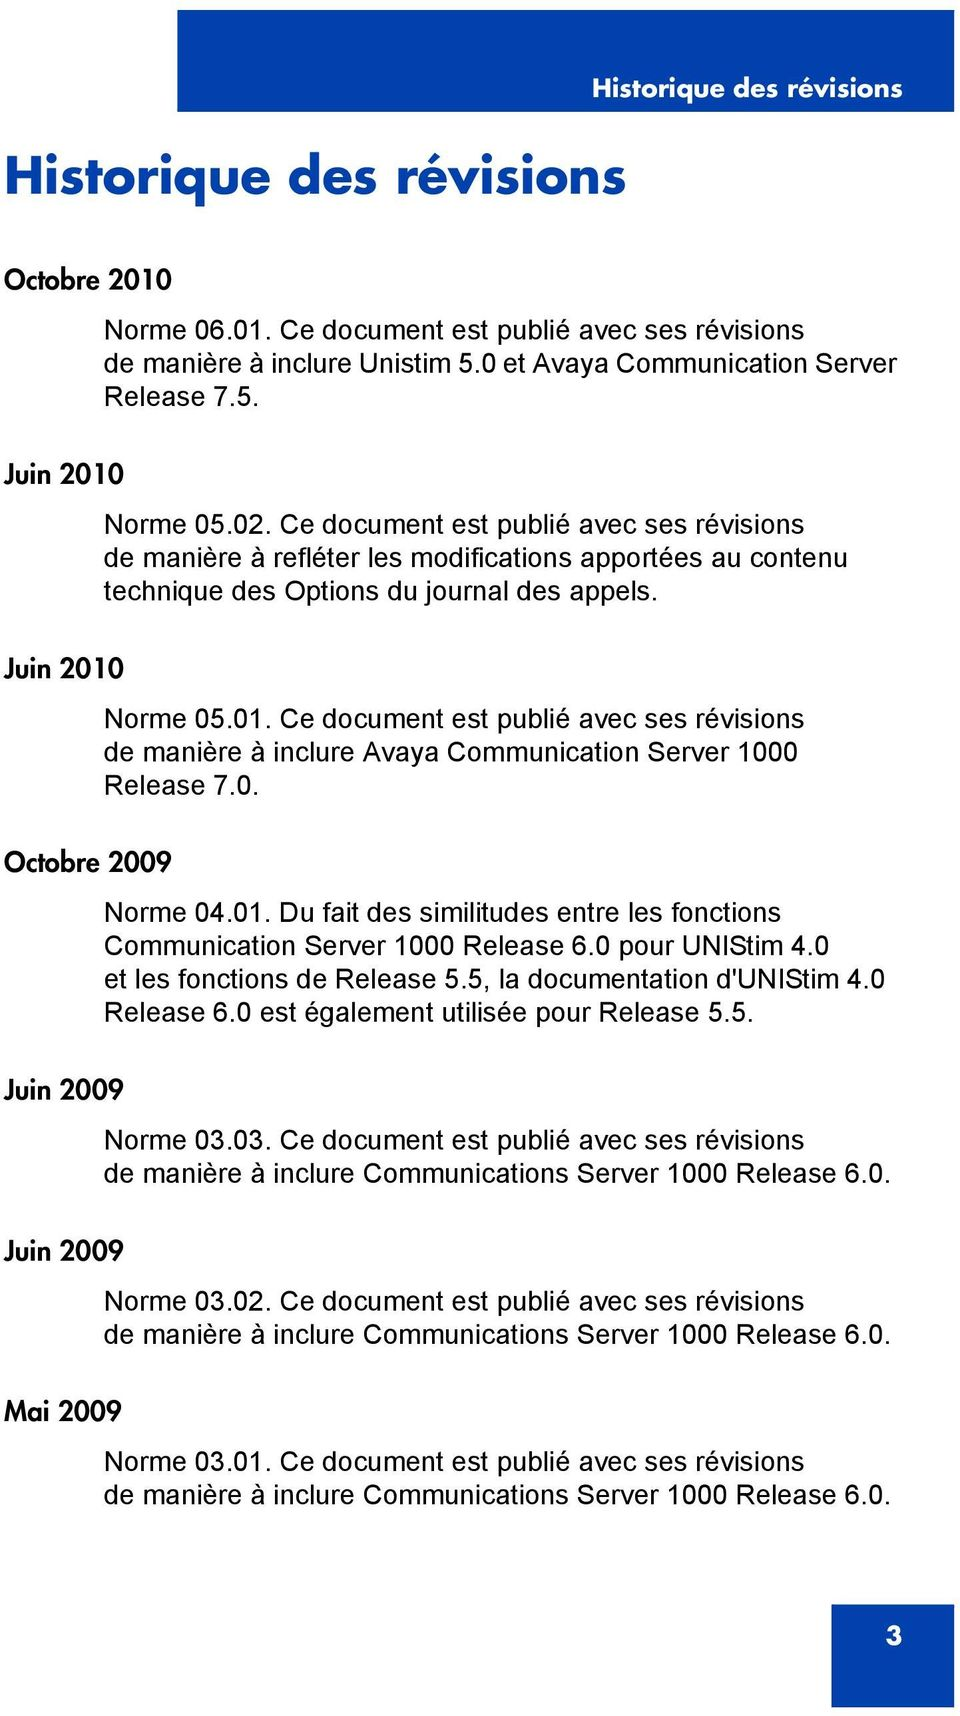 Norme 05.01. Ce document est publié avec ses révisions de manière à inclure Avaya Communication Server 1000 Release 7.0. Octobre 2009 Norme 04.01. Du fait des similitudes entre les fonctions Communication Server 1000 Release 6.